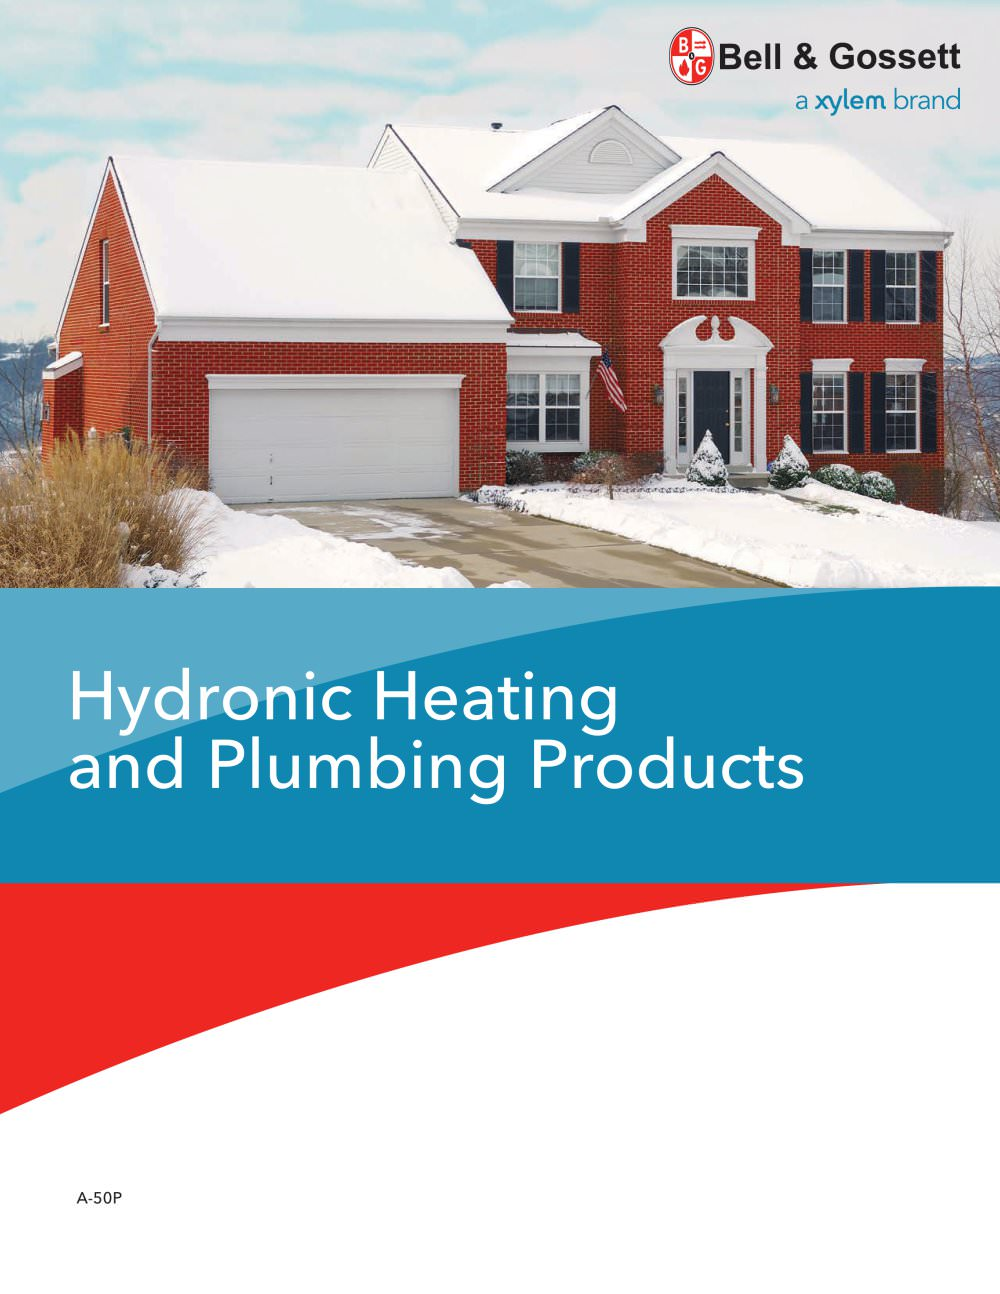 A 50 P Hydronic Heating and Plumbing Products - Bell & Gossett ...